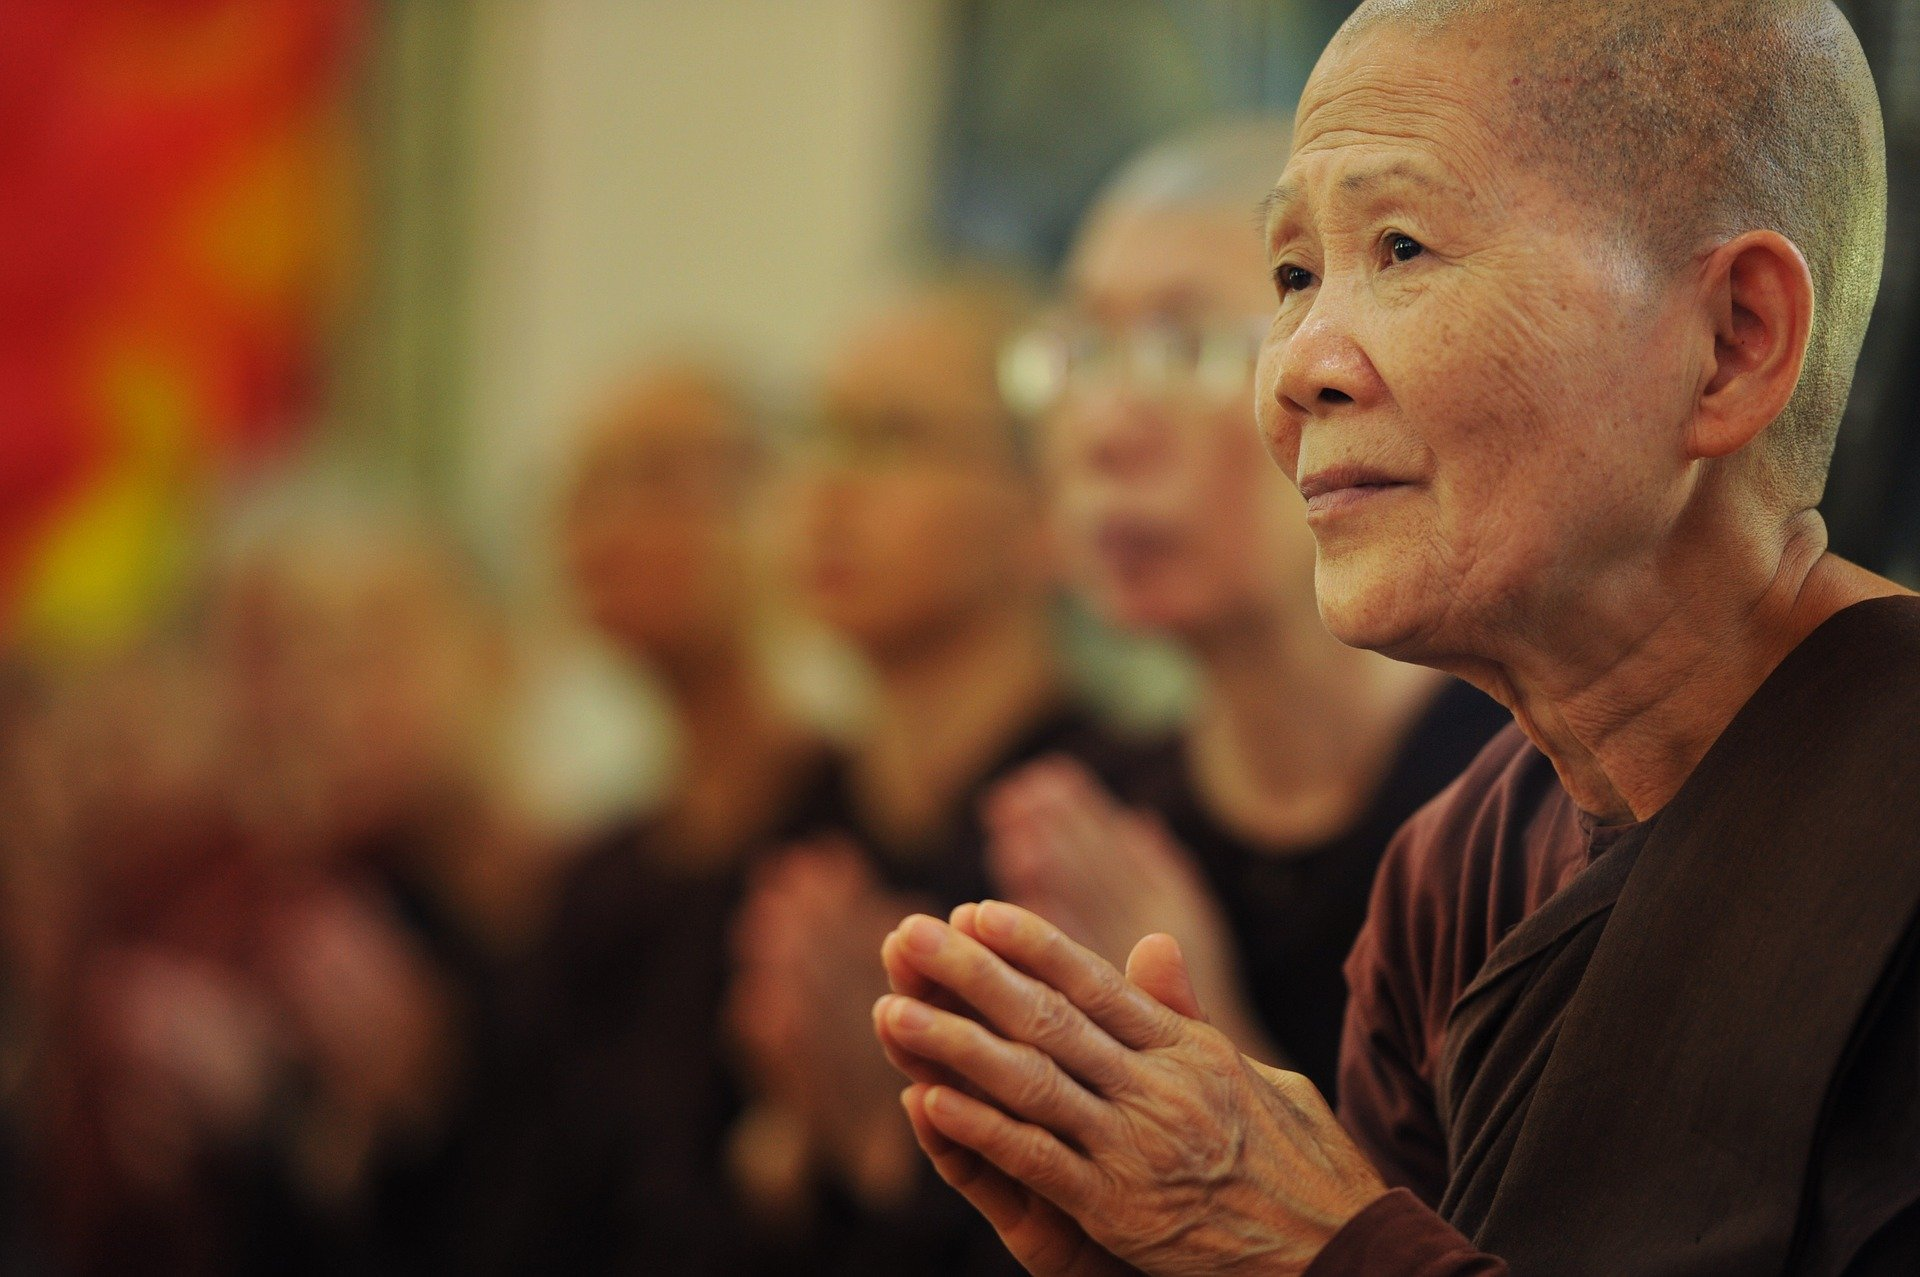 How Religion Helps Seniors During Difficult Times